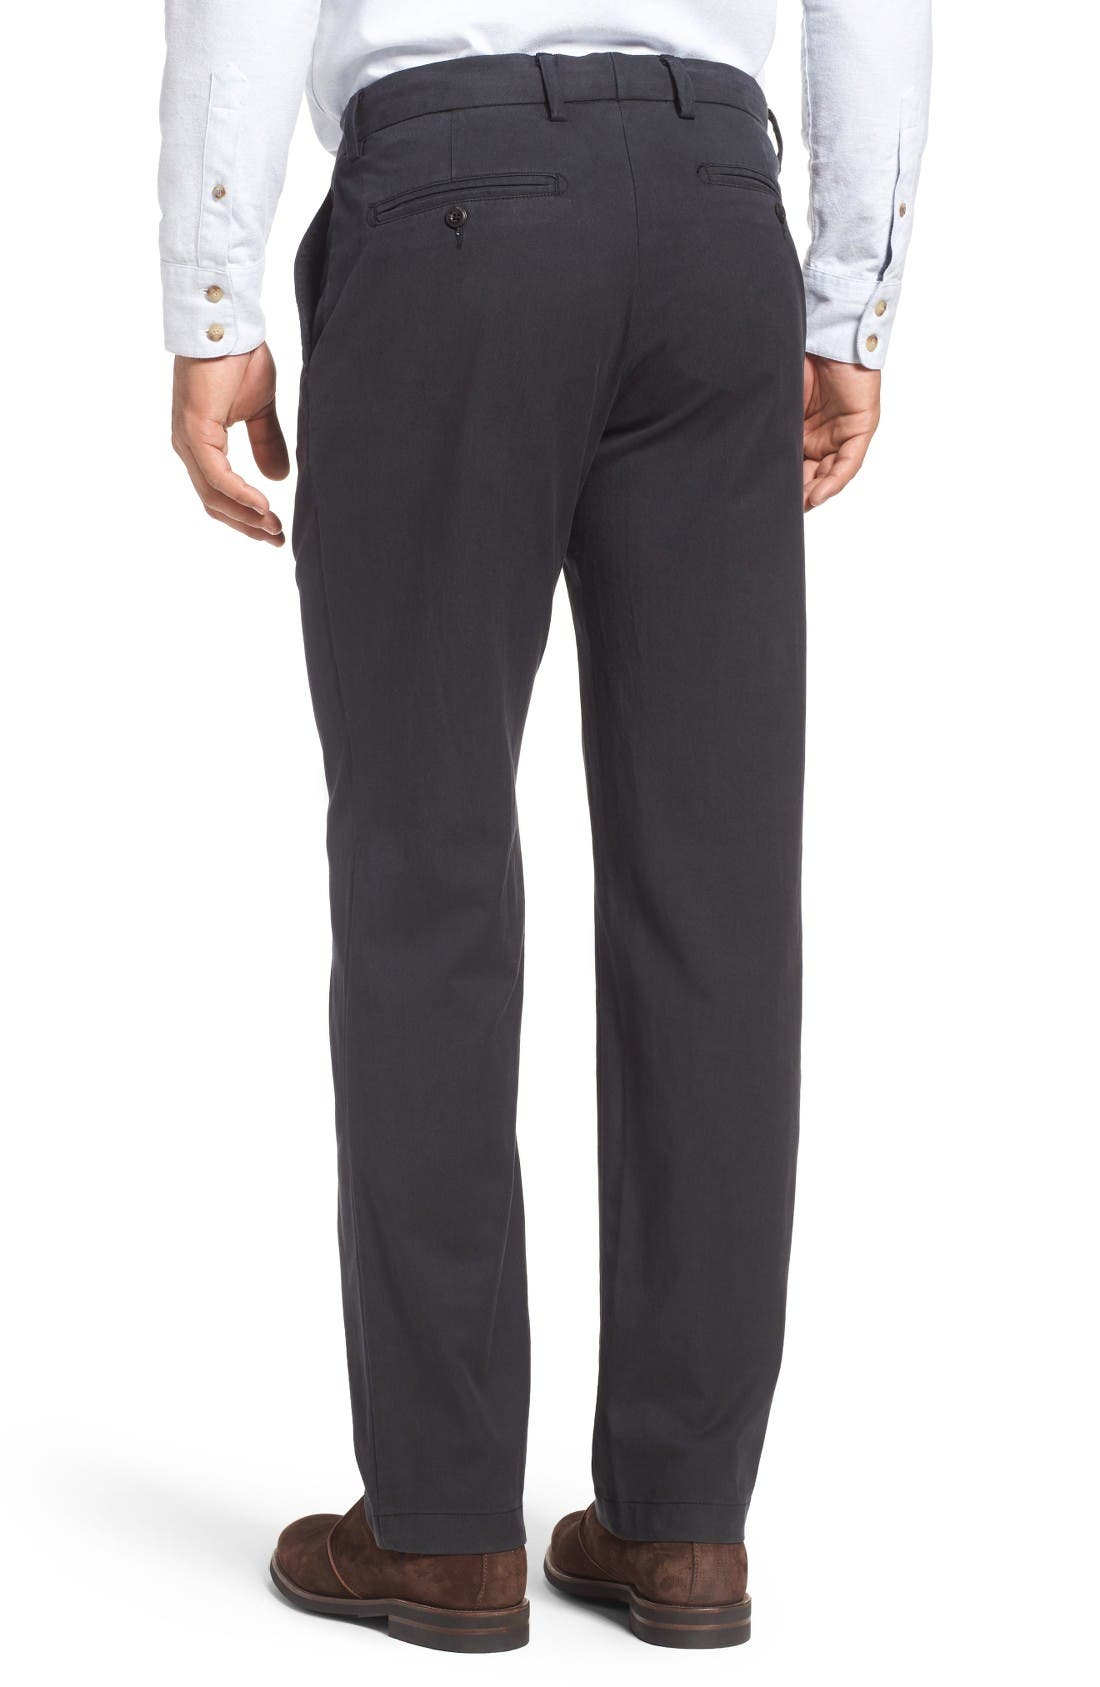 Offshore Flat Front Pants,                             Alternate thumbnail 2, color,                             Black